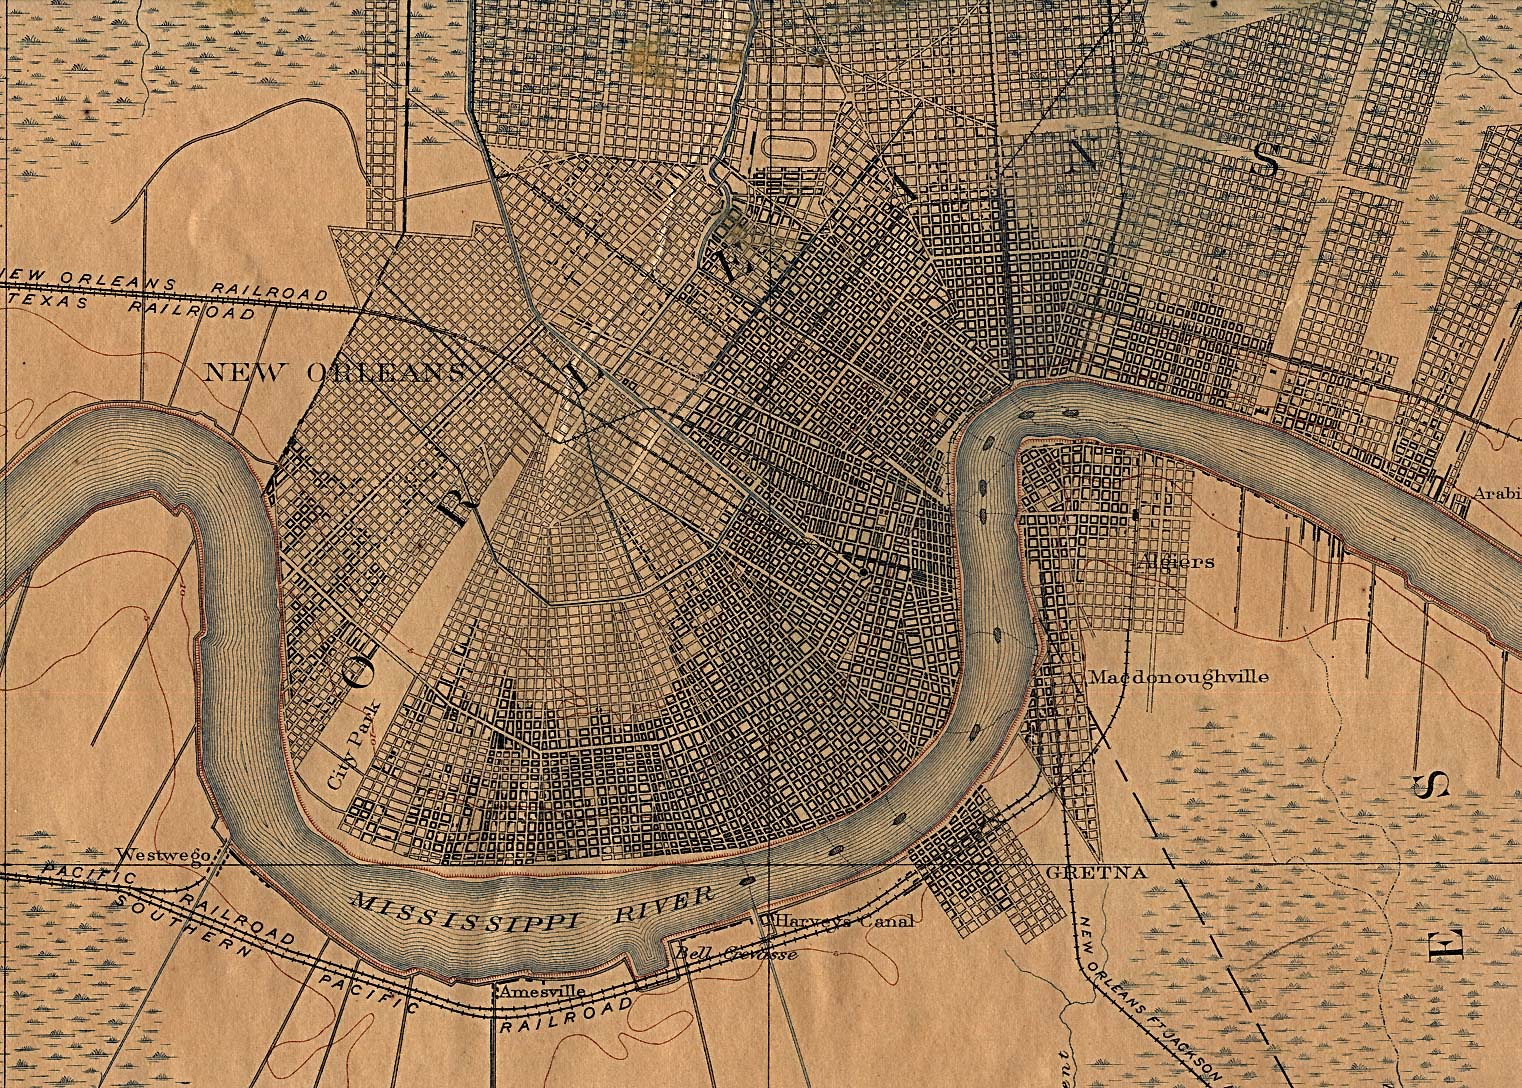 Historical Maps of U.S Cities. New Orleans, Louisiana 1891 U.S. Geological Survey (740K)